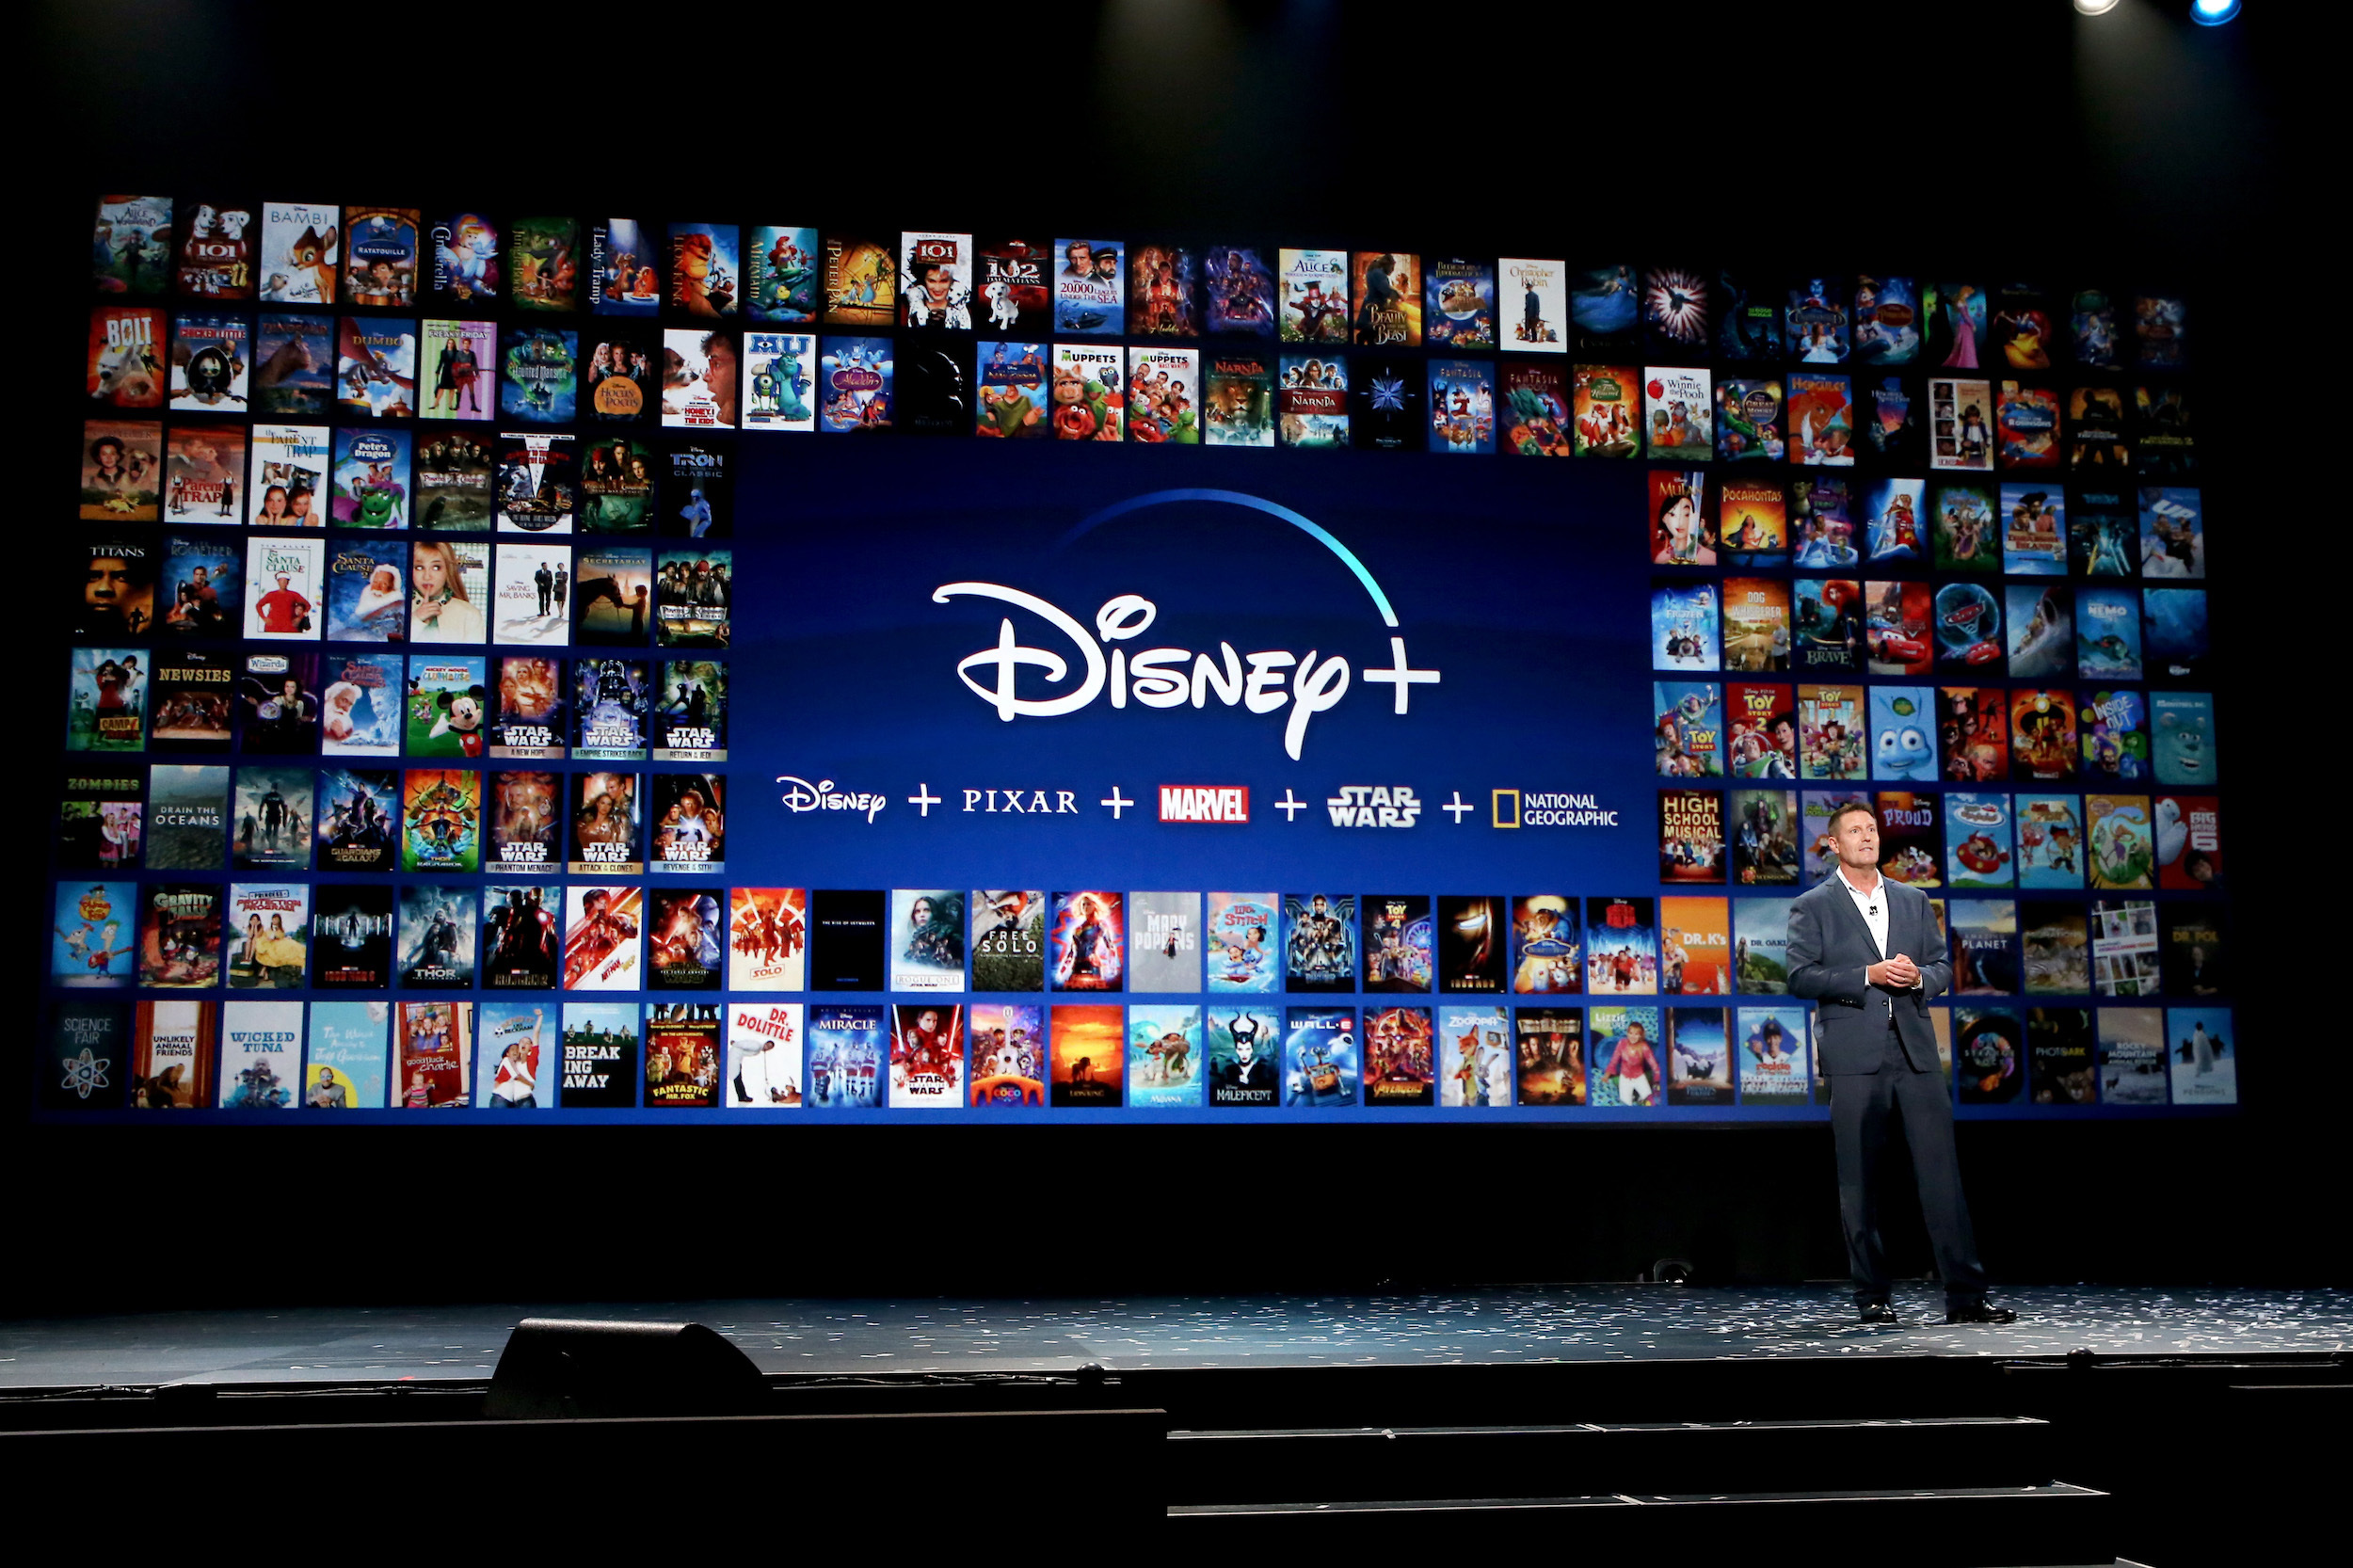 Your guide to Disney Plus shows, movies, pricing, news, and more